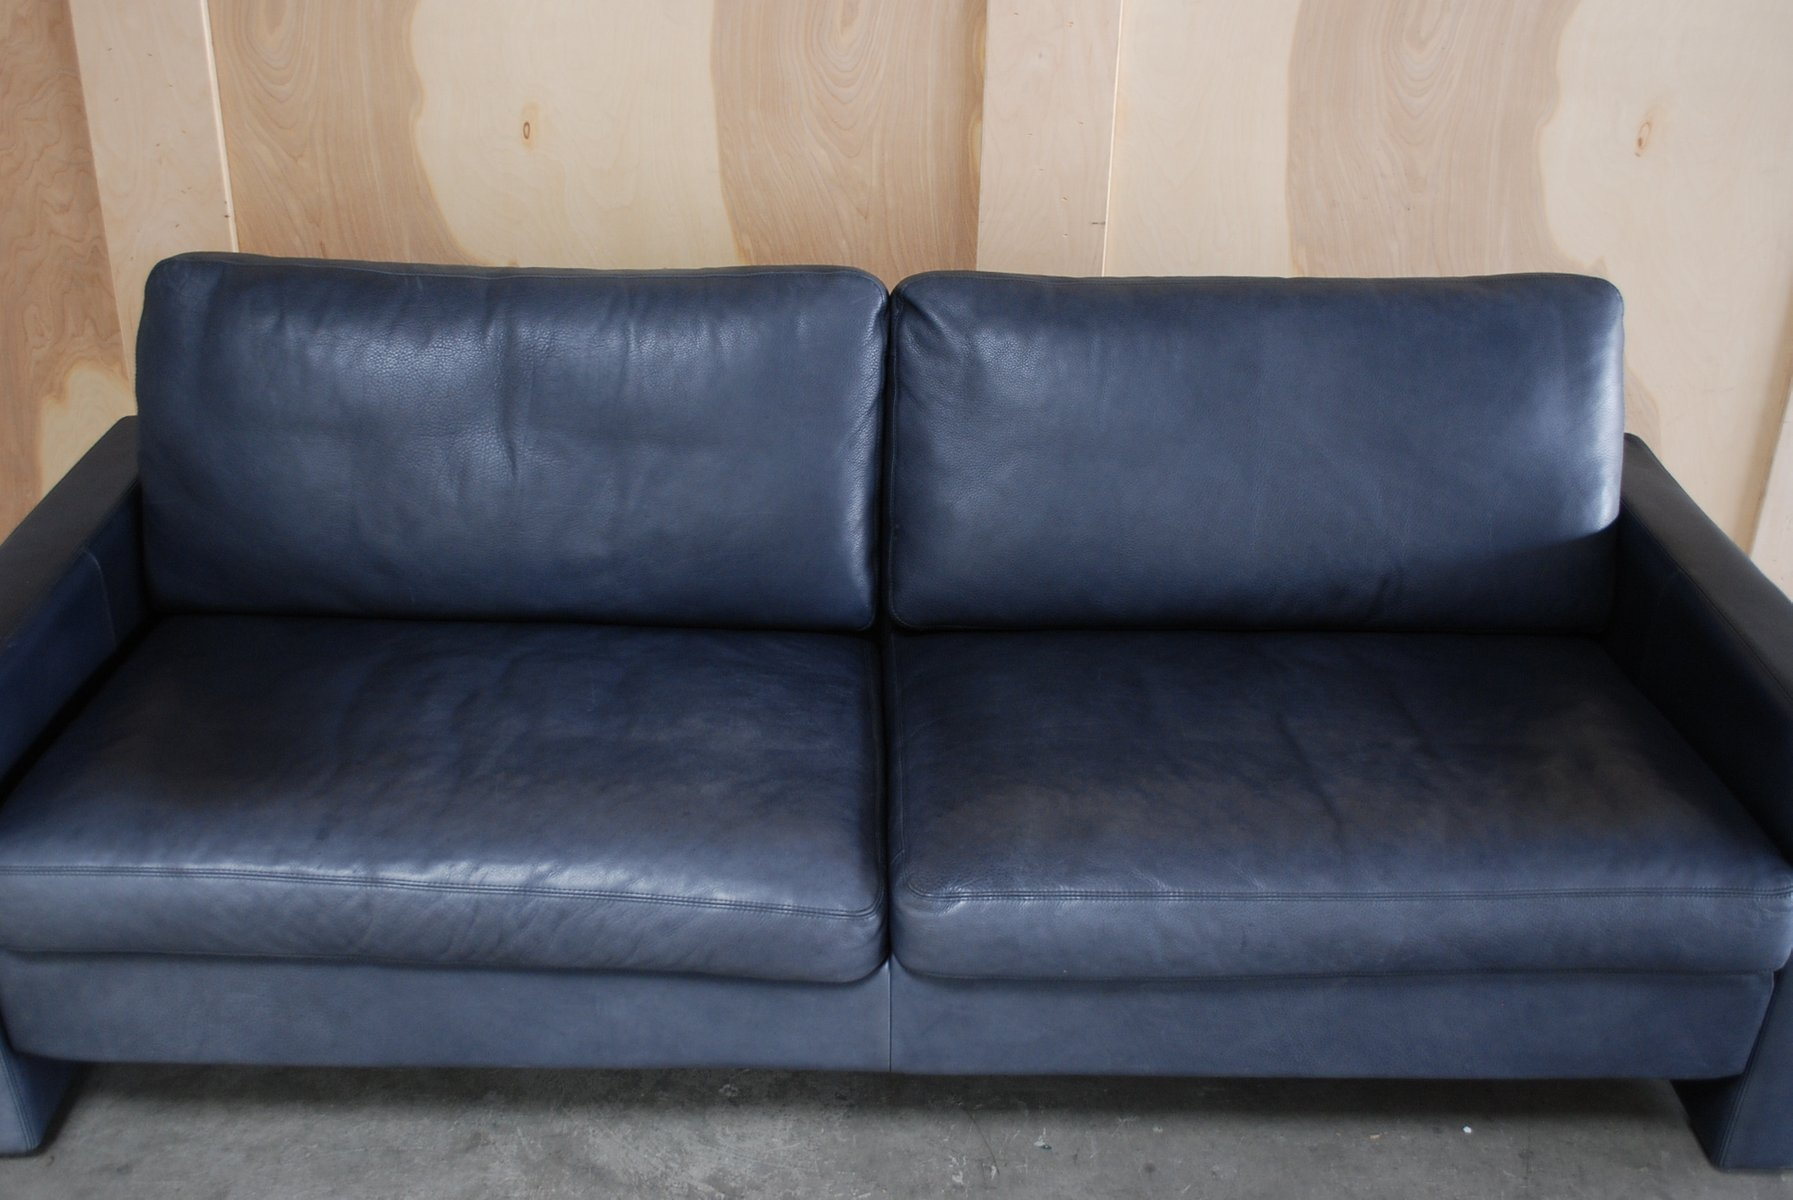 Vintage conseta blue leather sofa from cor for sale at pamono for Blue leather couch